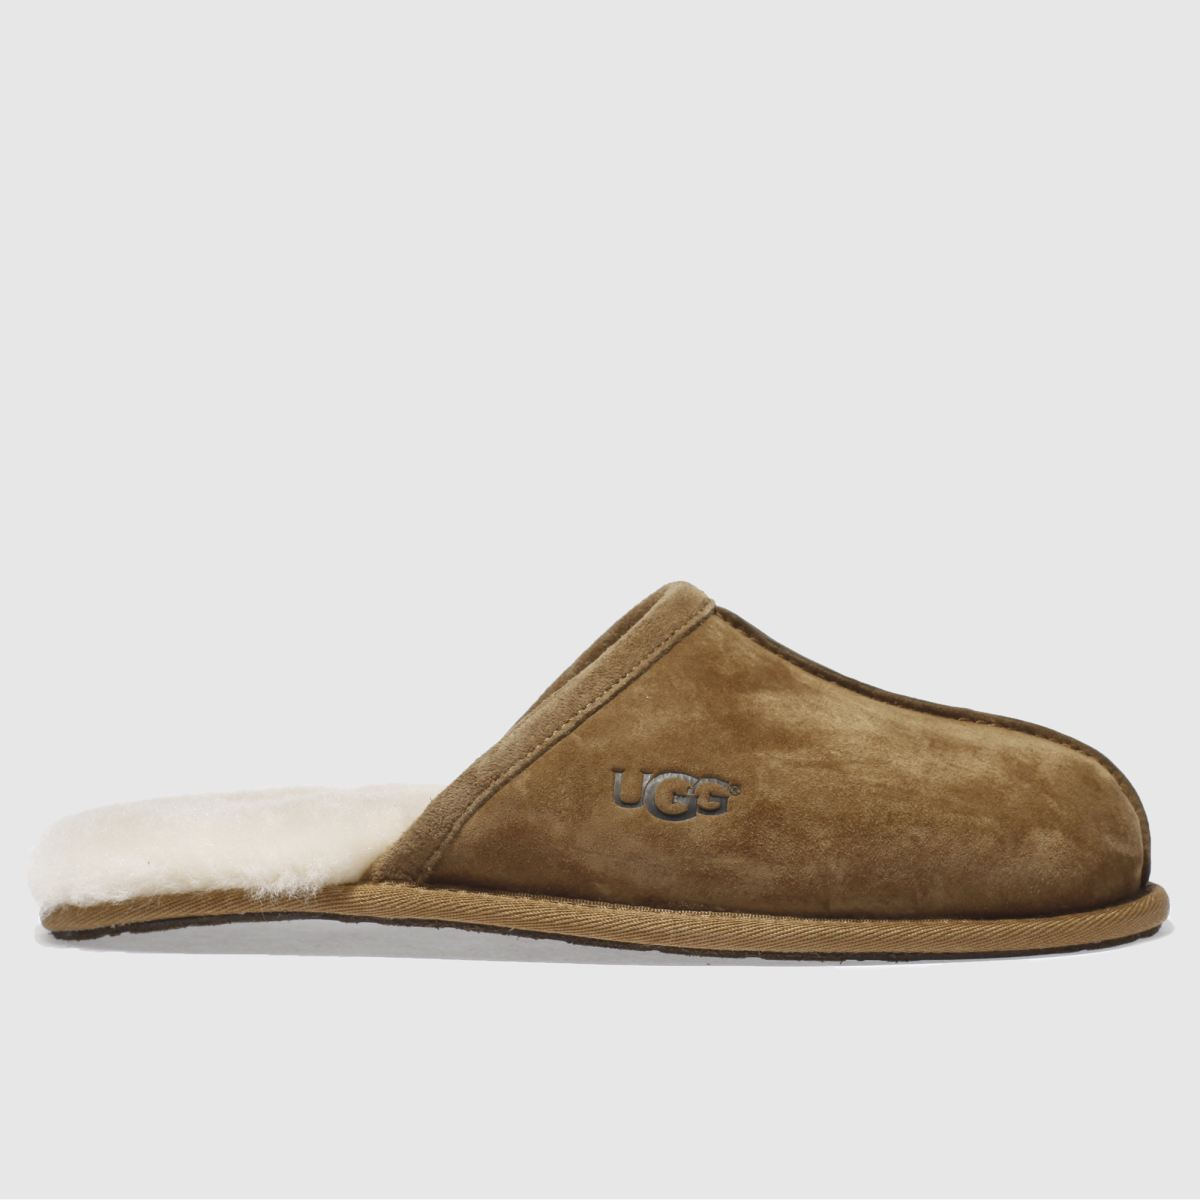 Ugg Tan Scuff House Slippers